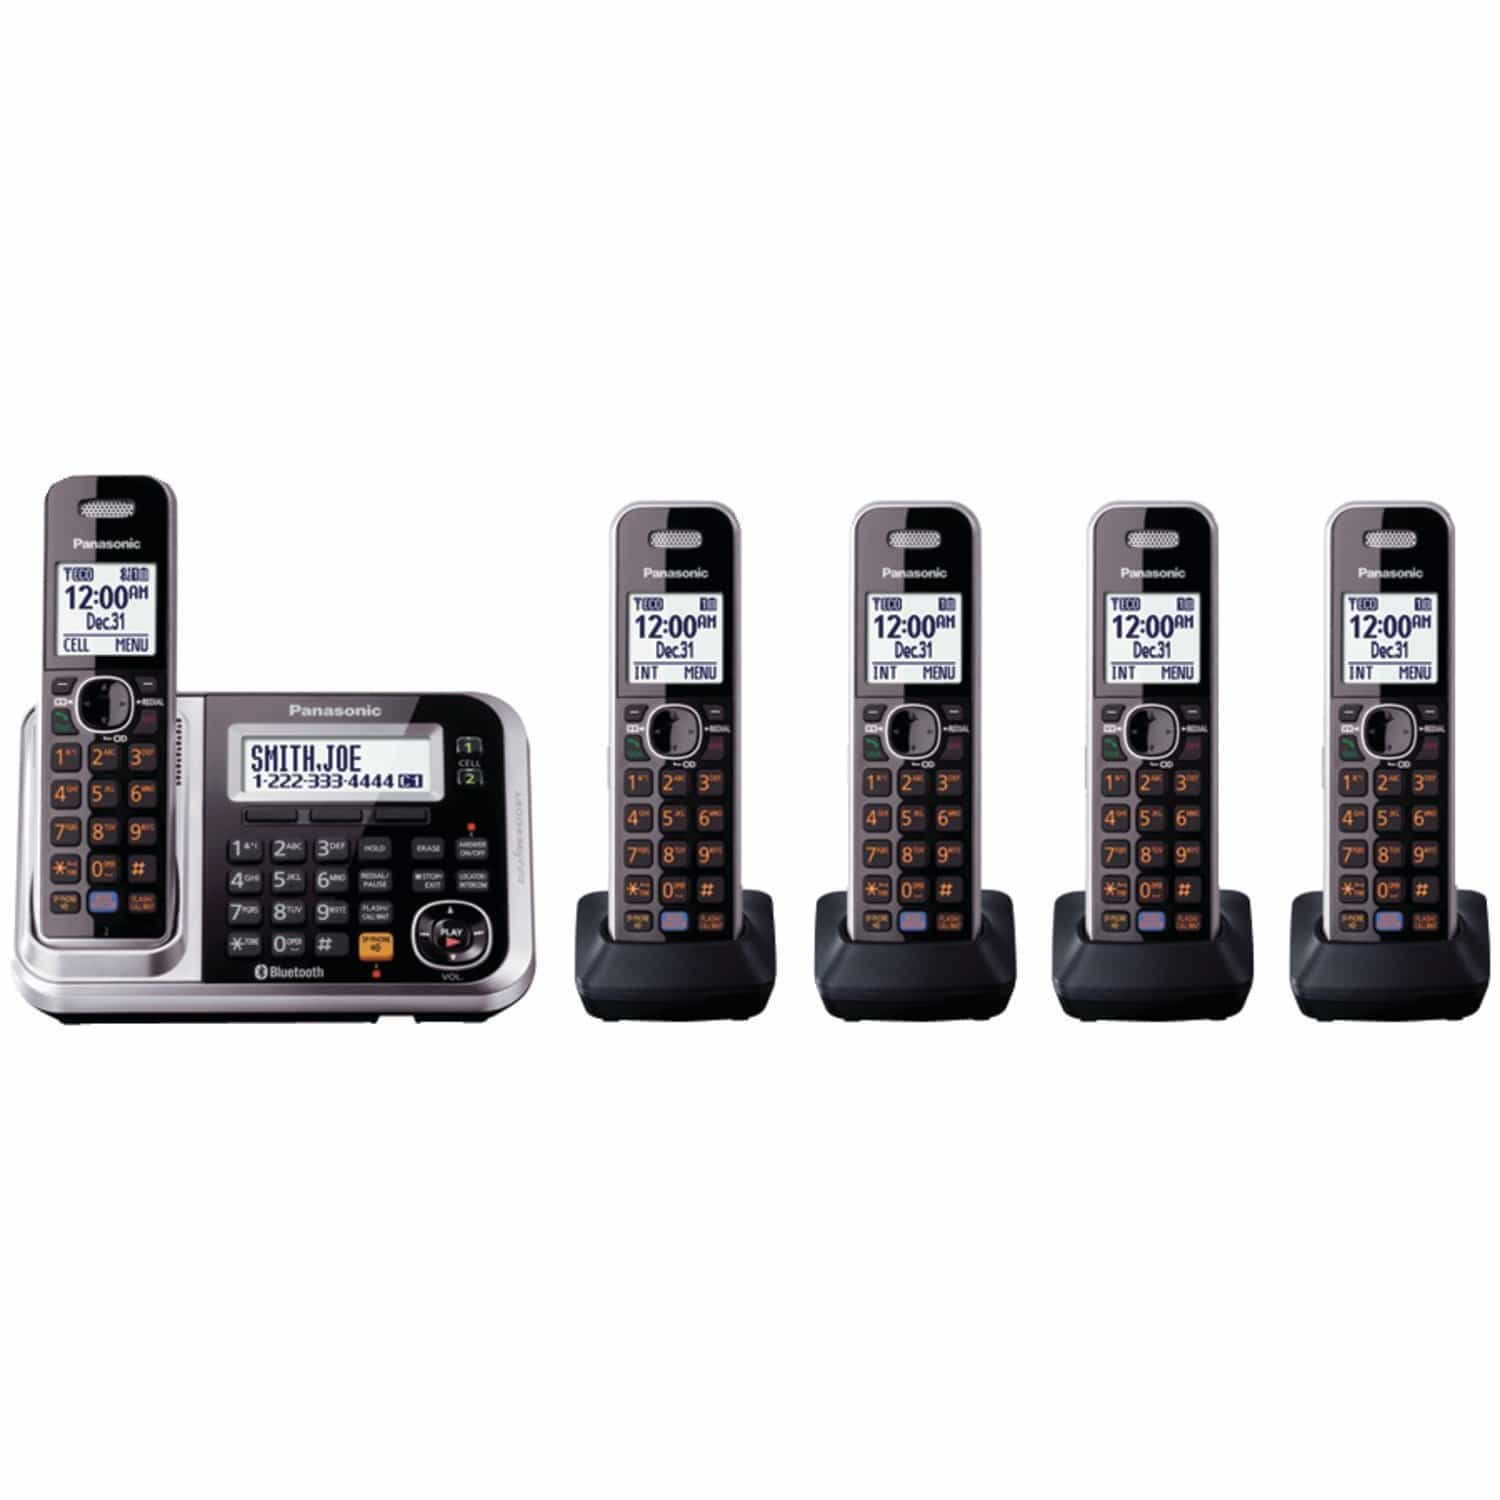 Best Cordless Phones For 2019 Buyers Guide And Telephone Ringing Circuits Home Phone